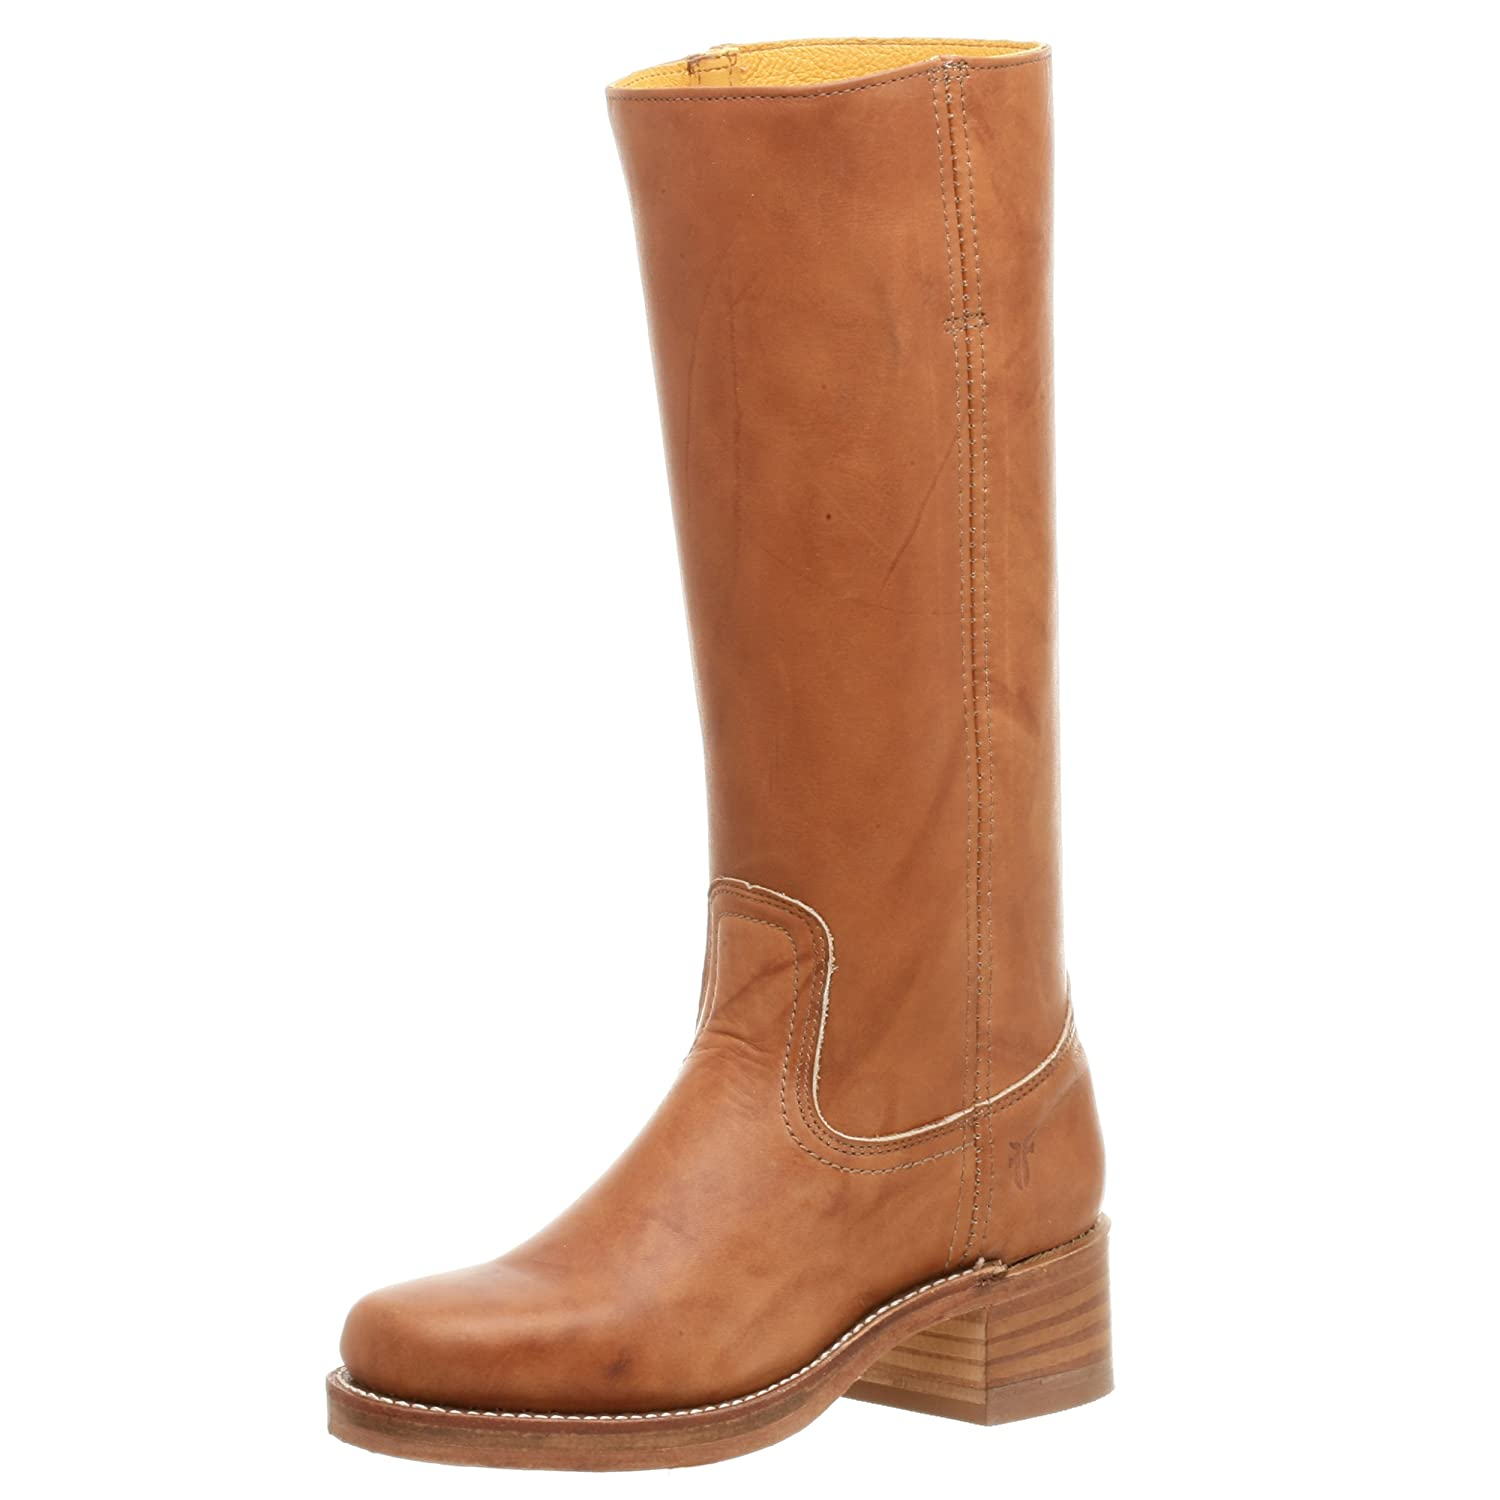 Endless.com: FRYE Women's Campus 14L Tall Boot: Women's Shoes from endless.com